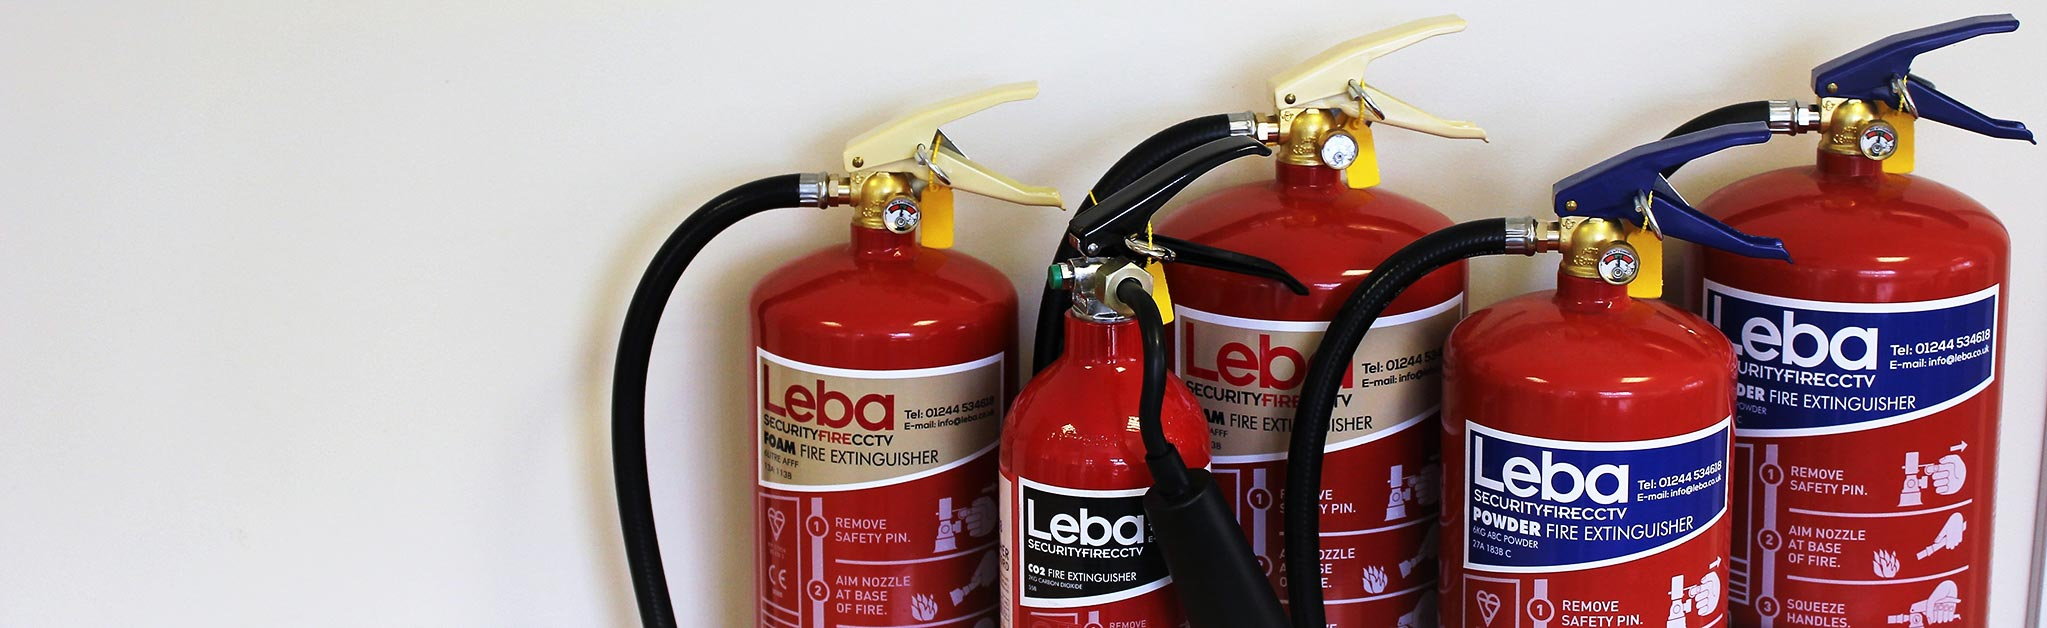 http://leba.co.uk/uploads/images/head-slides/Slide_Fire-Extinguishers.jpg